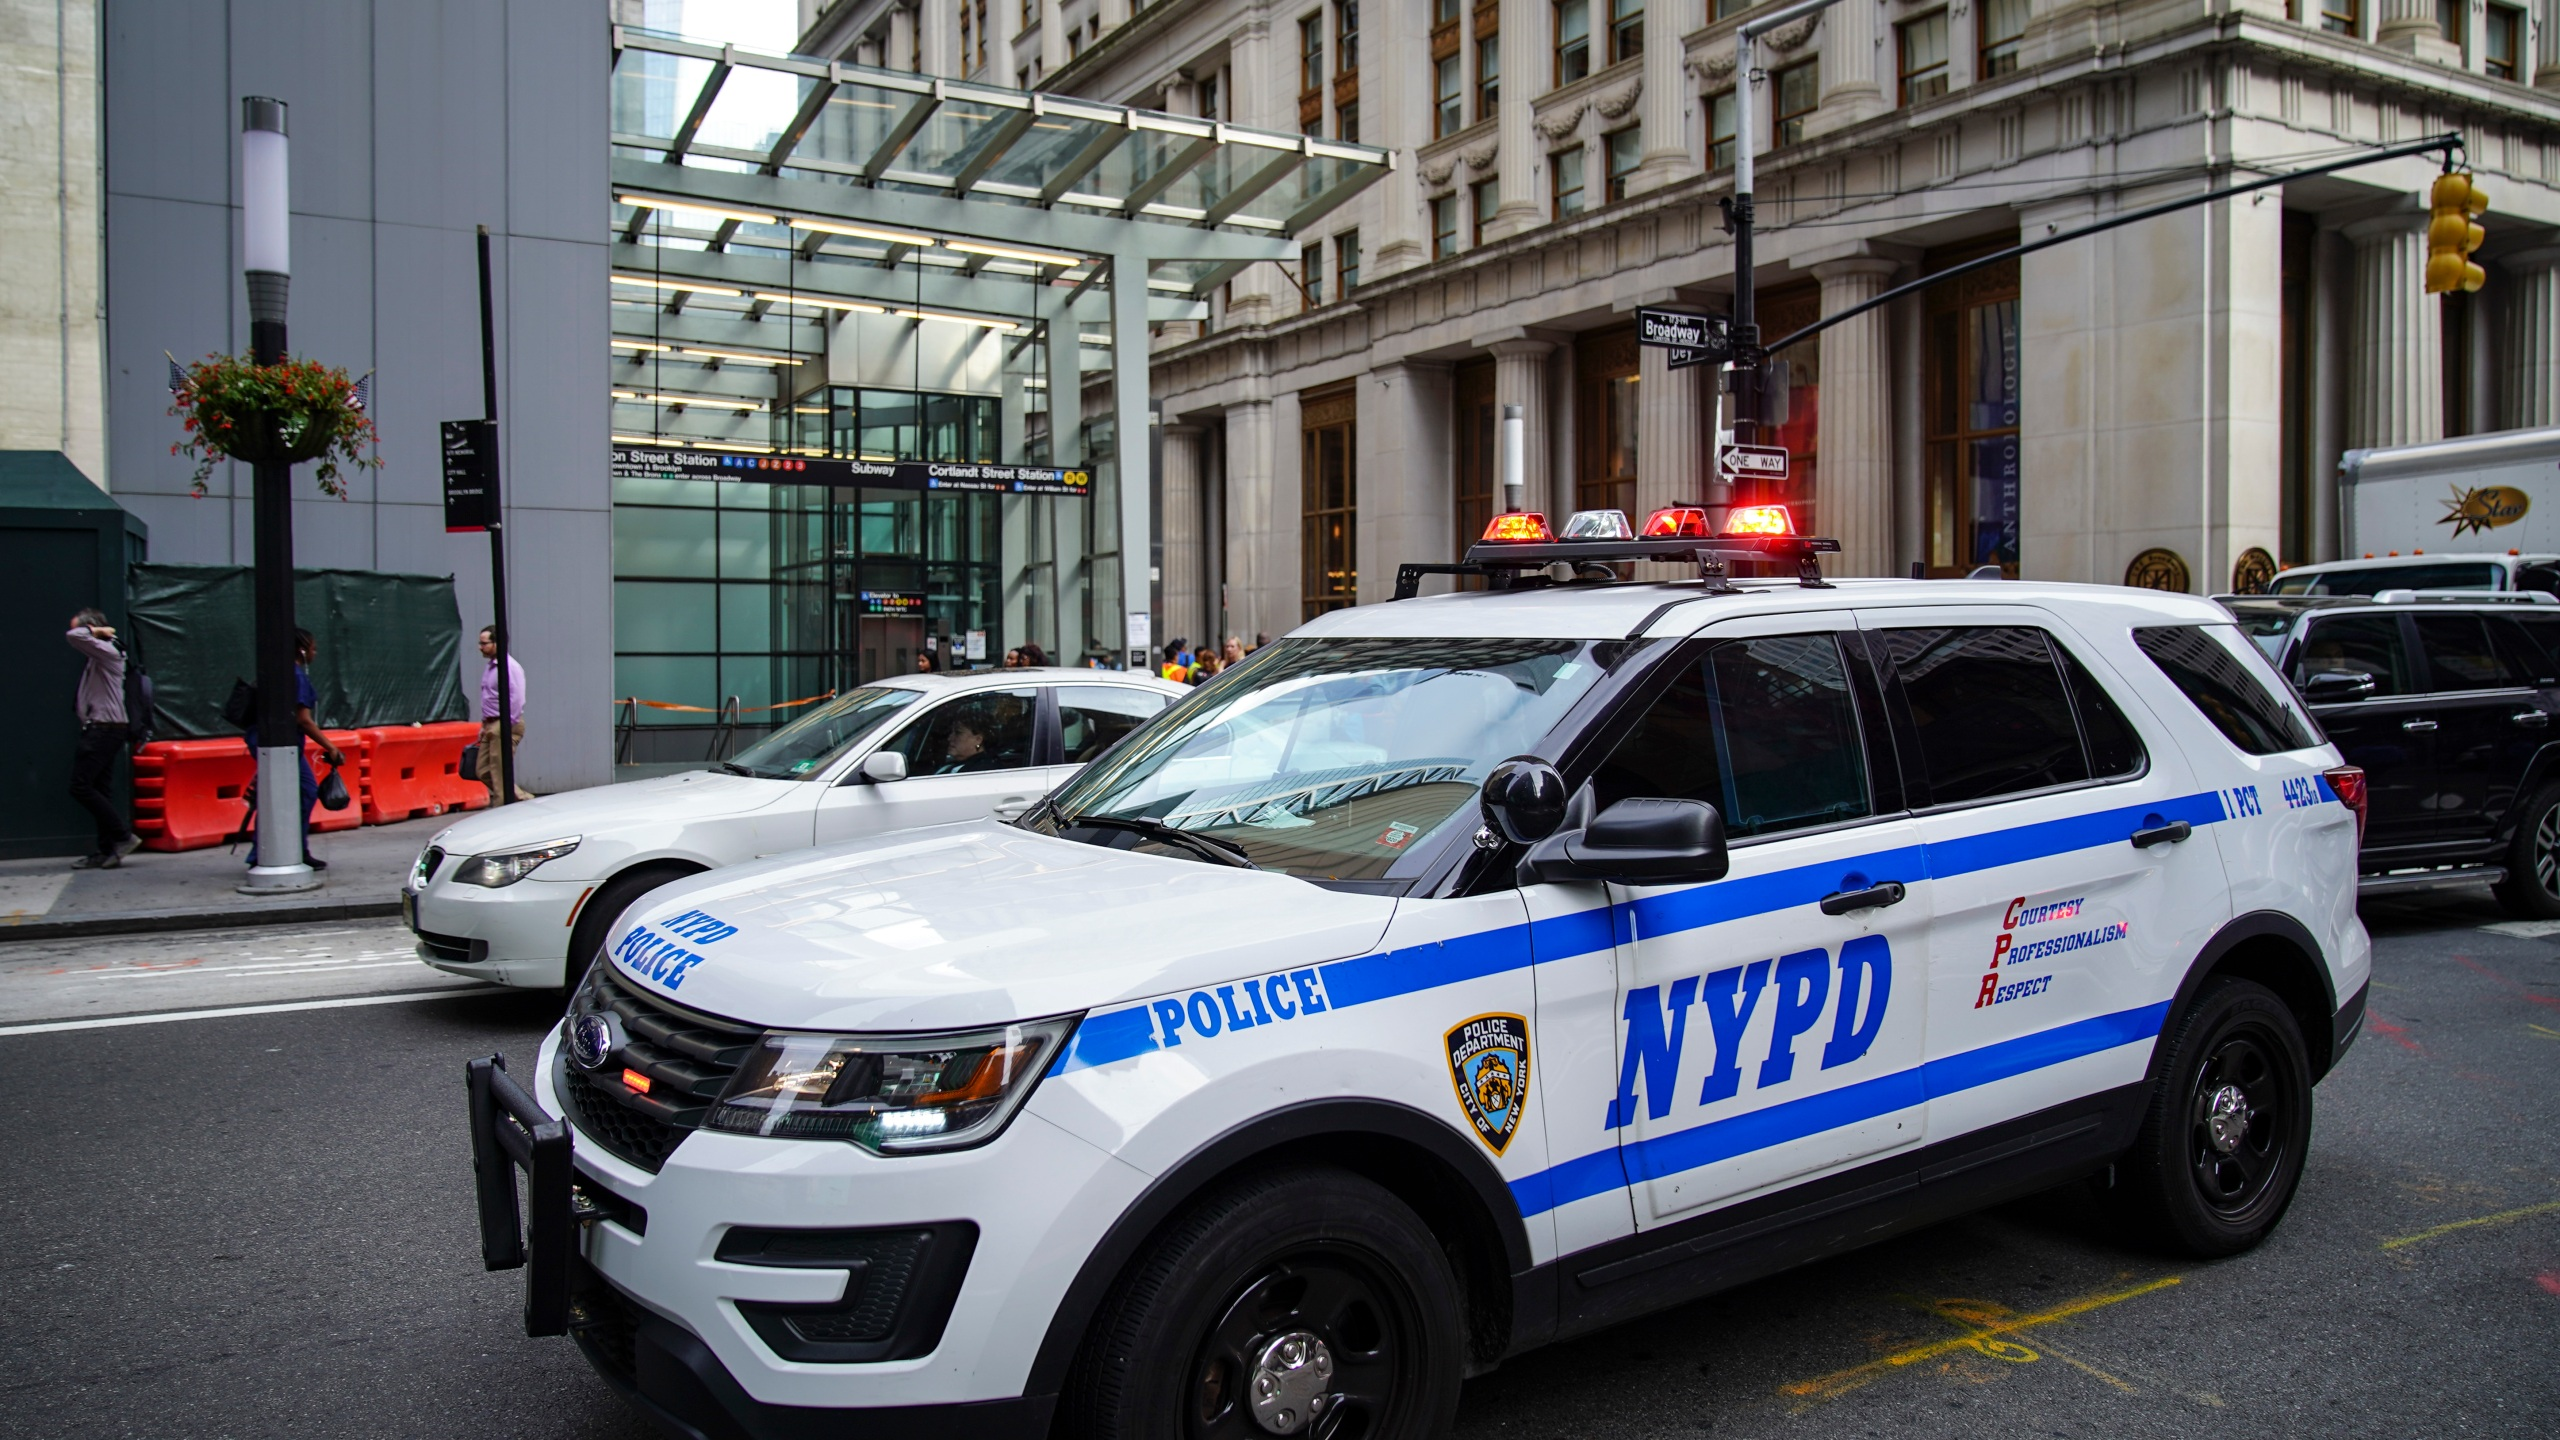 NYPD police vehicles are seen in Lower Manhattan on August 16, 2019, in New York City. (Drew Angerer/Getty Images)